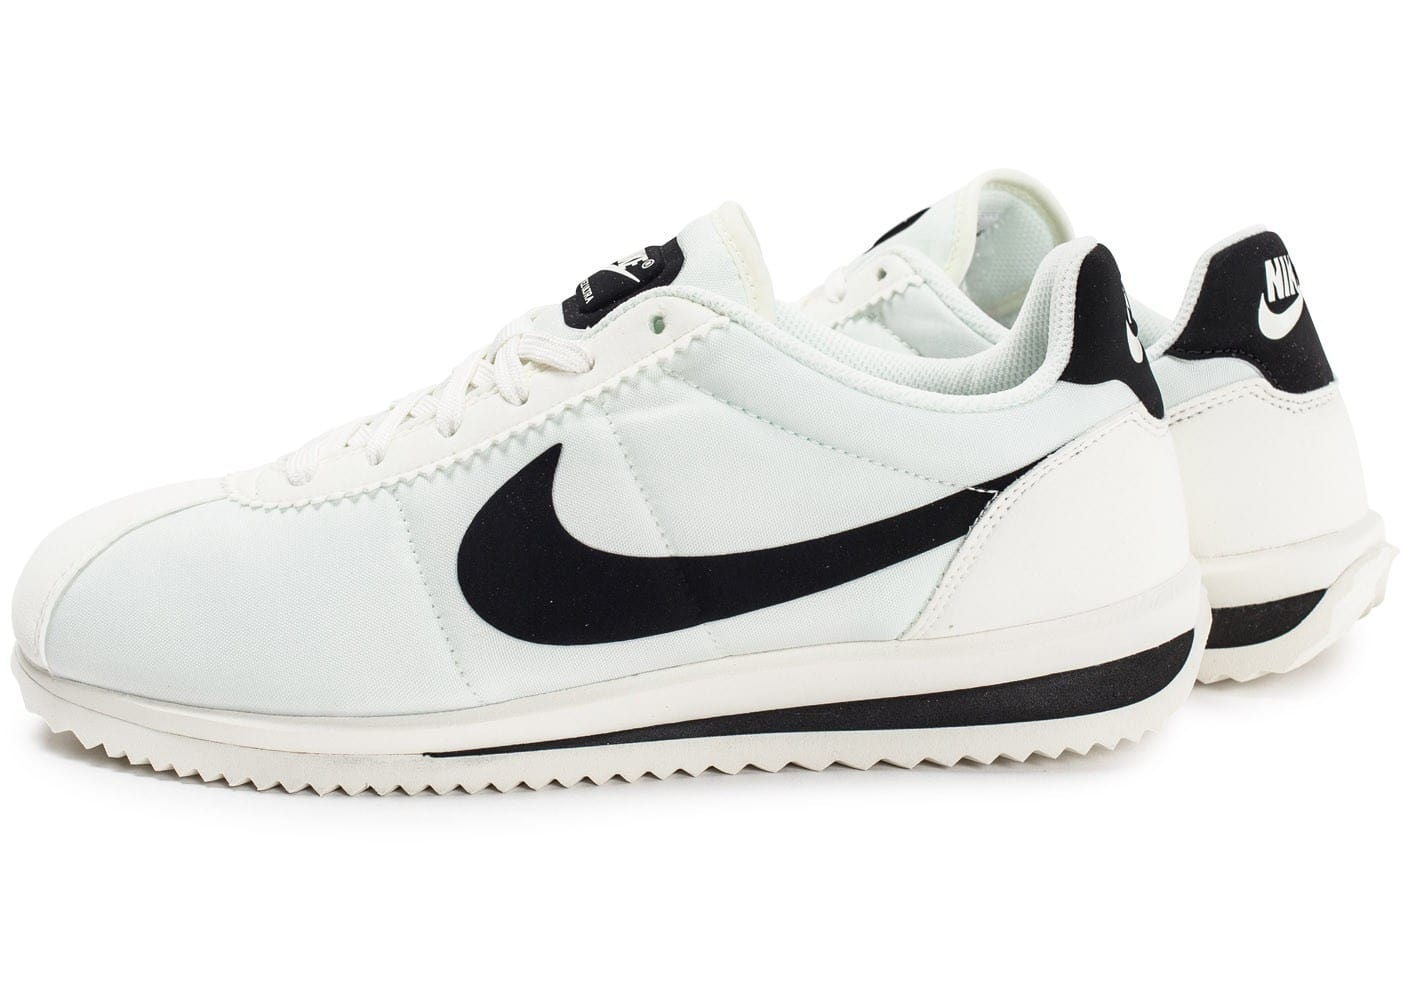 nike cortez ultra sd cr me chaussures homme chausport. Black Bedroom Furniture Sets. Home Design Ideas